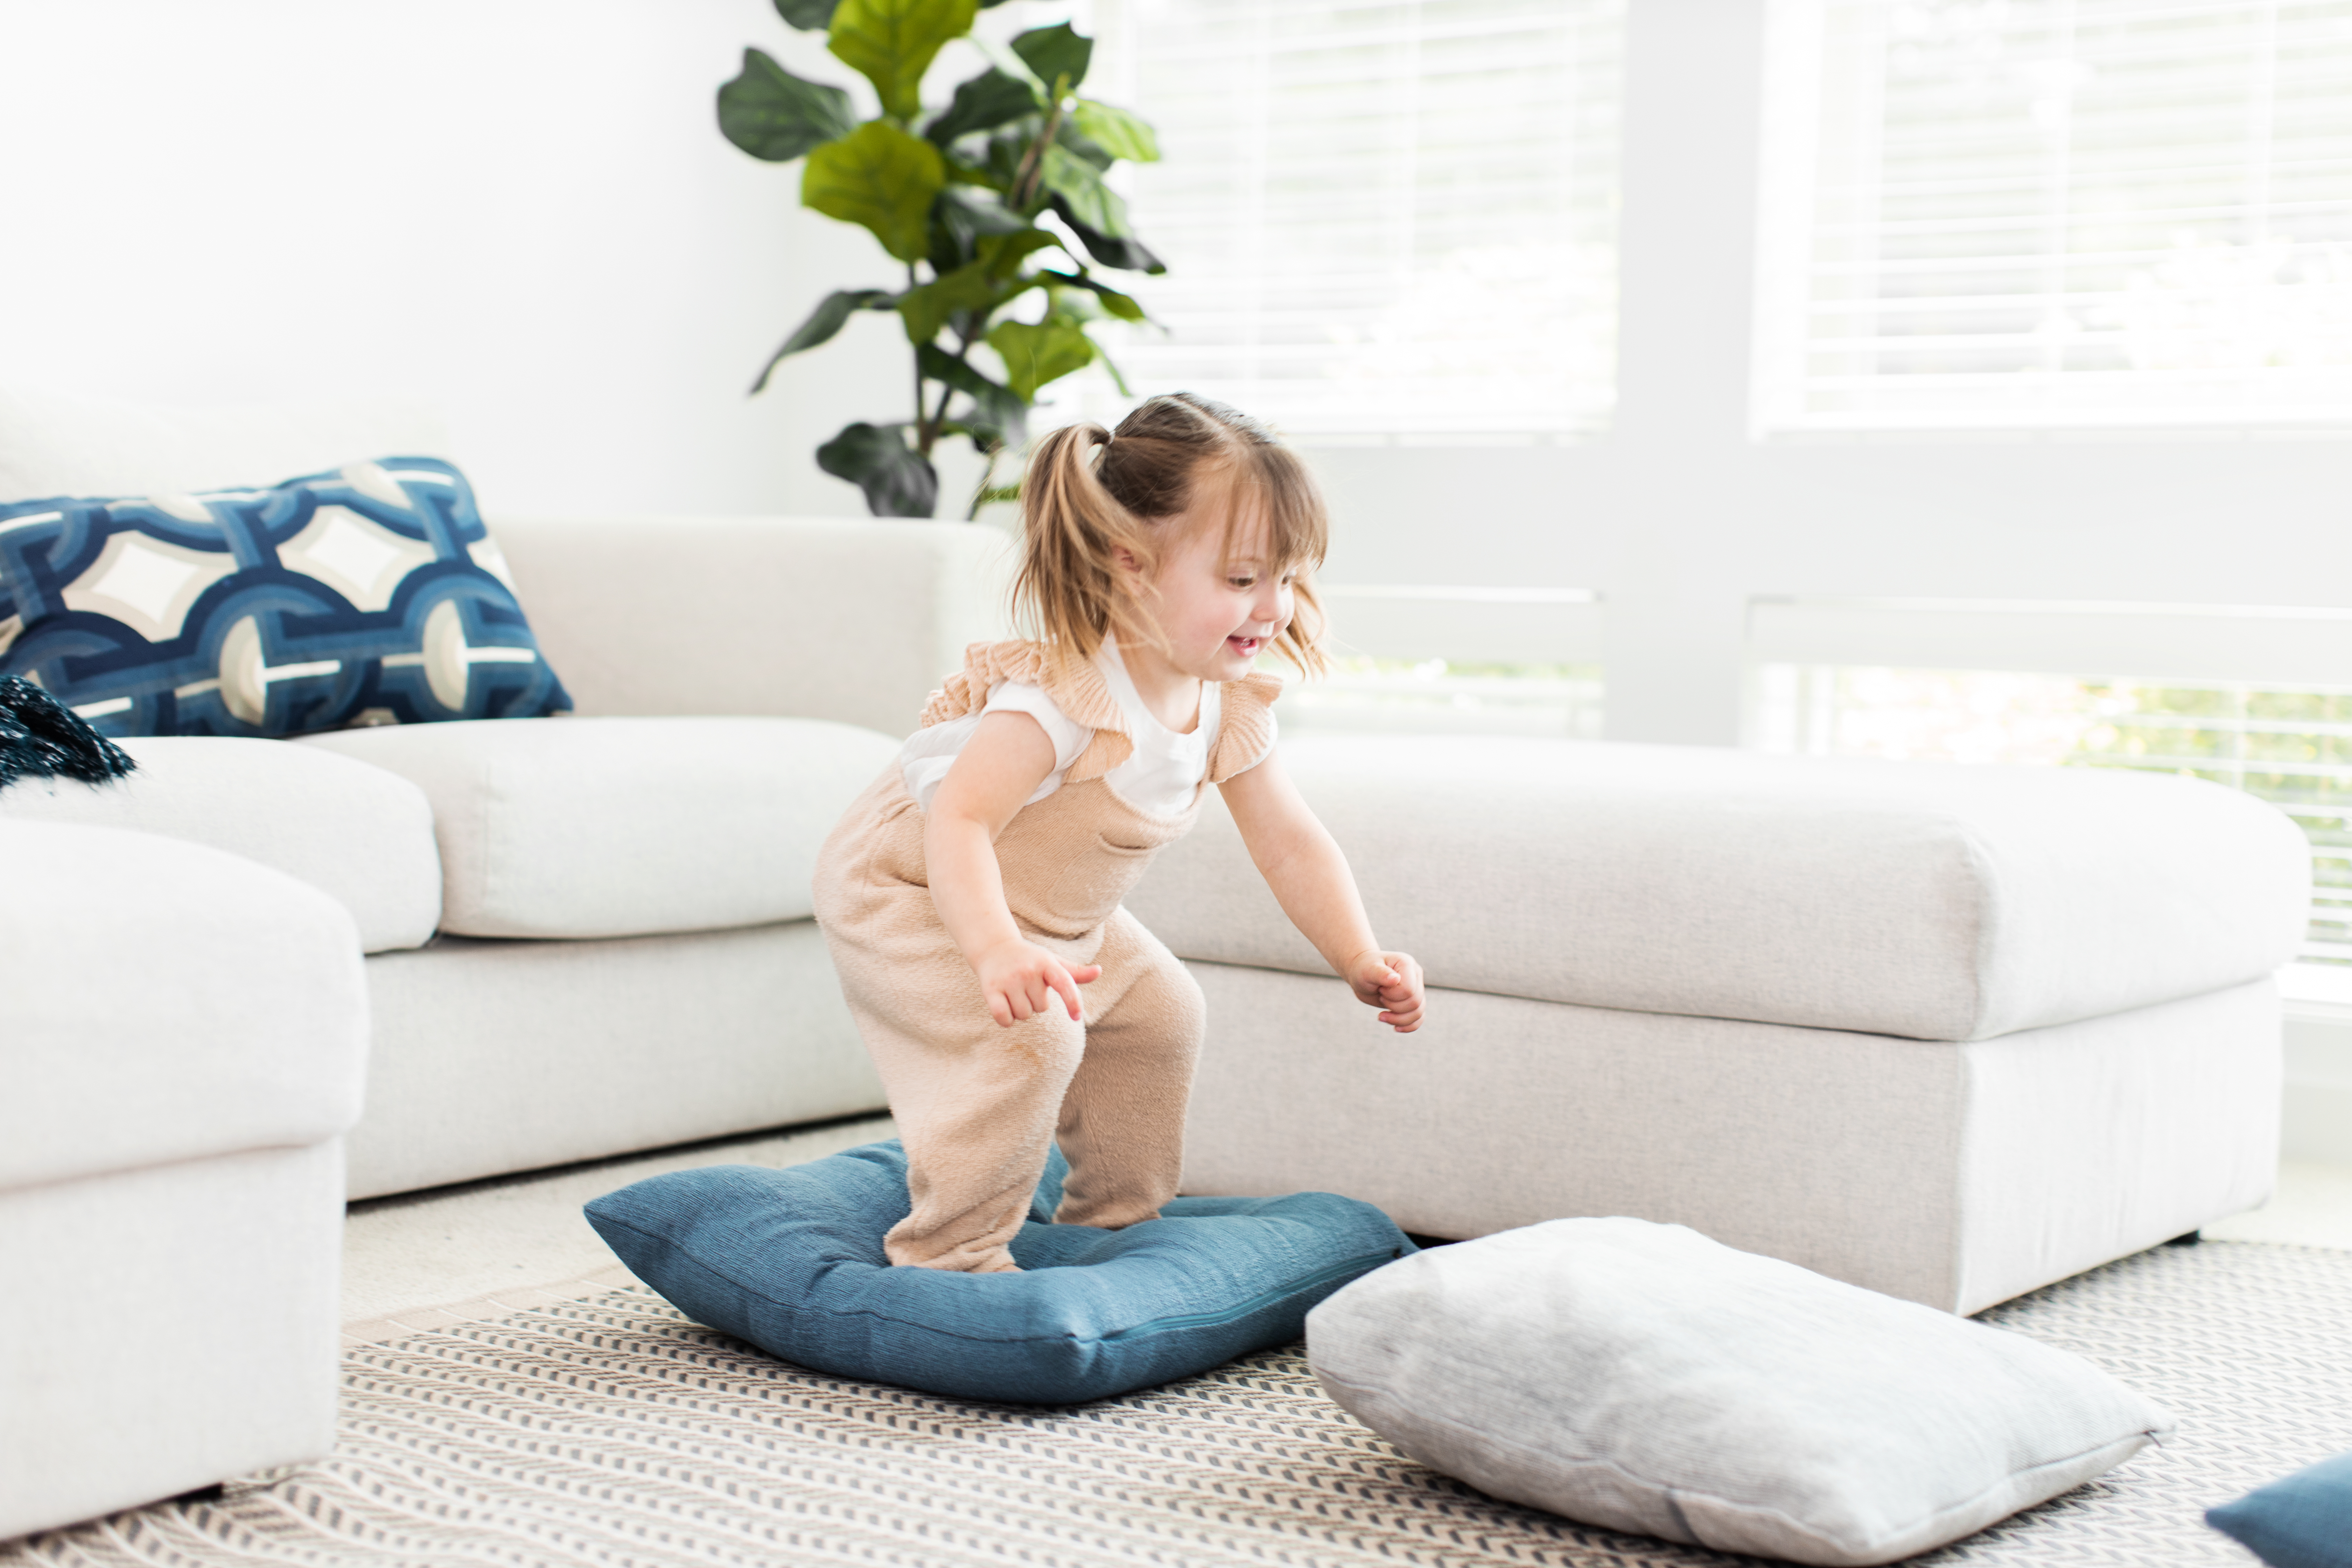 Toddler jumping from a pillow to another pillow on the ground